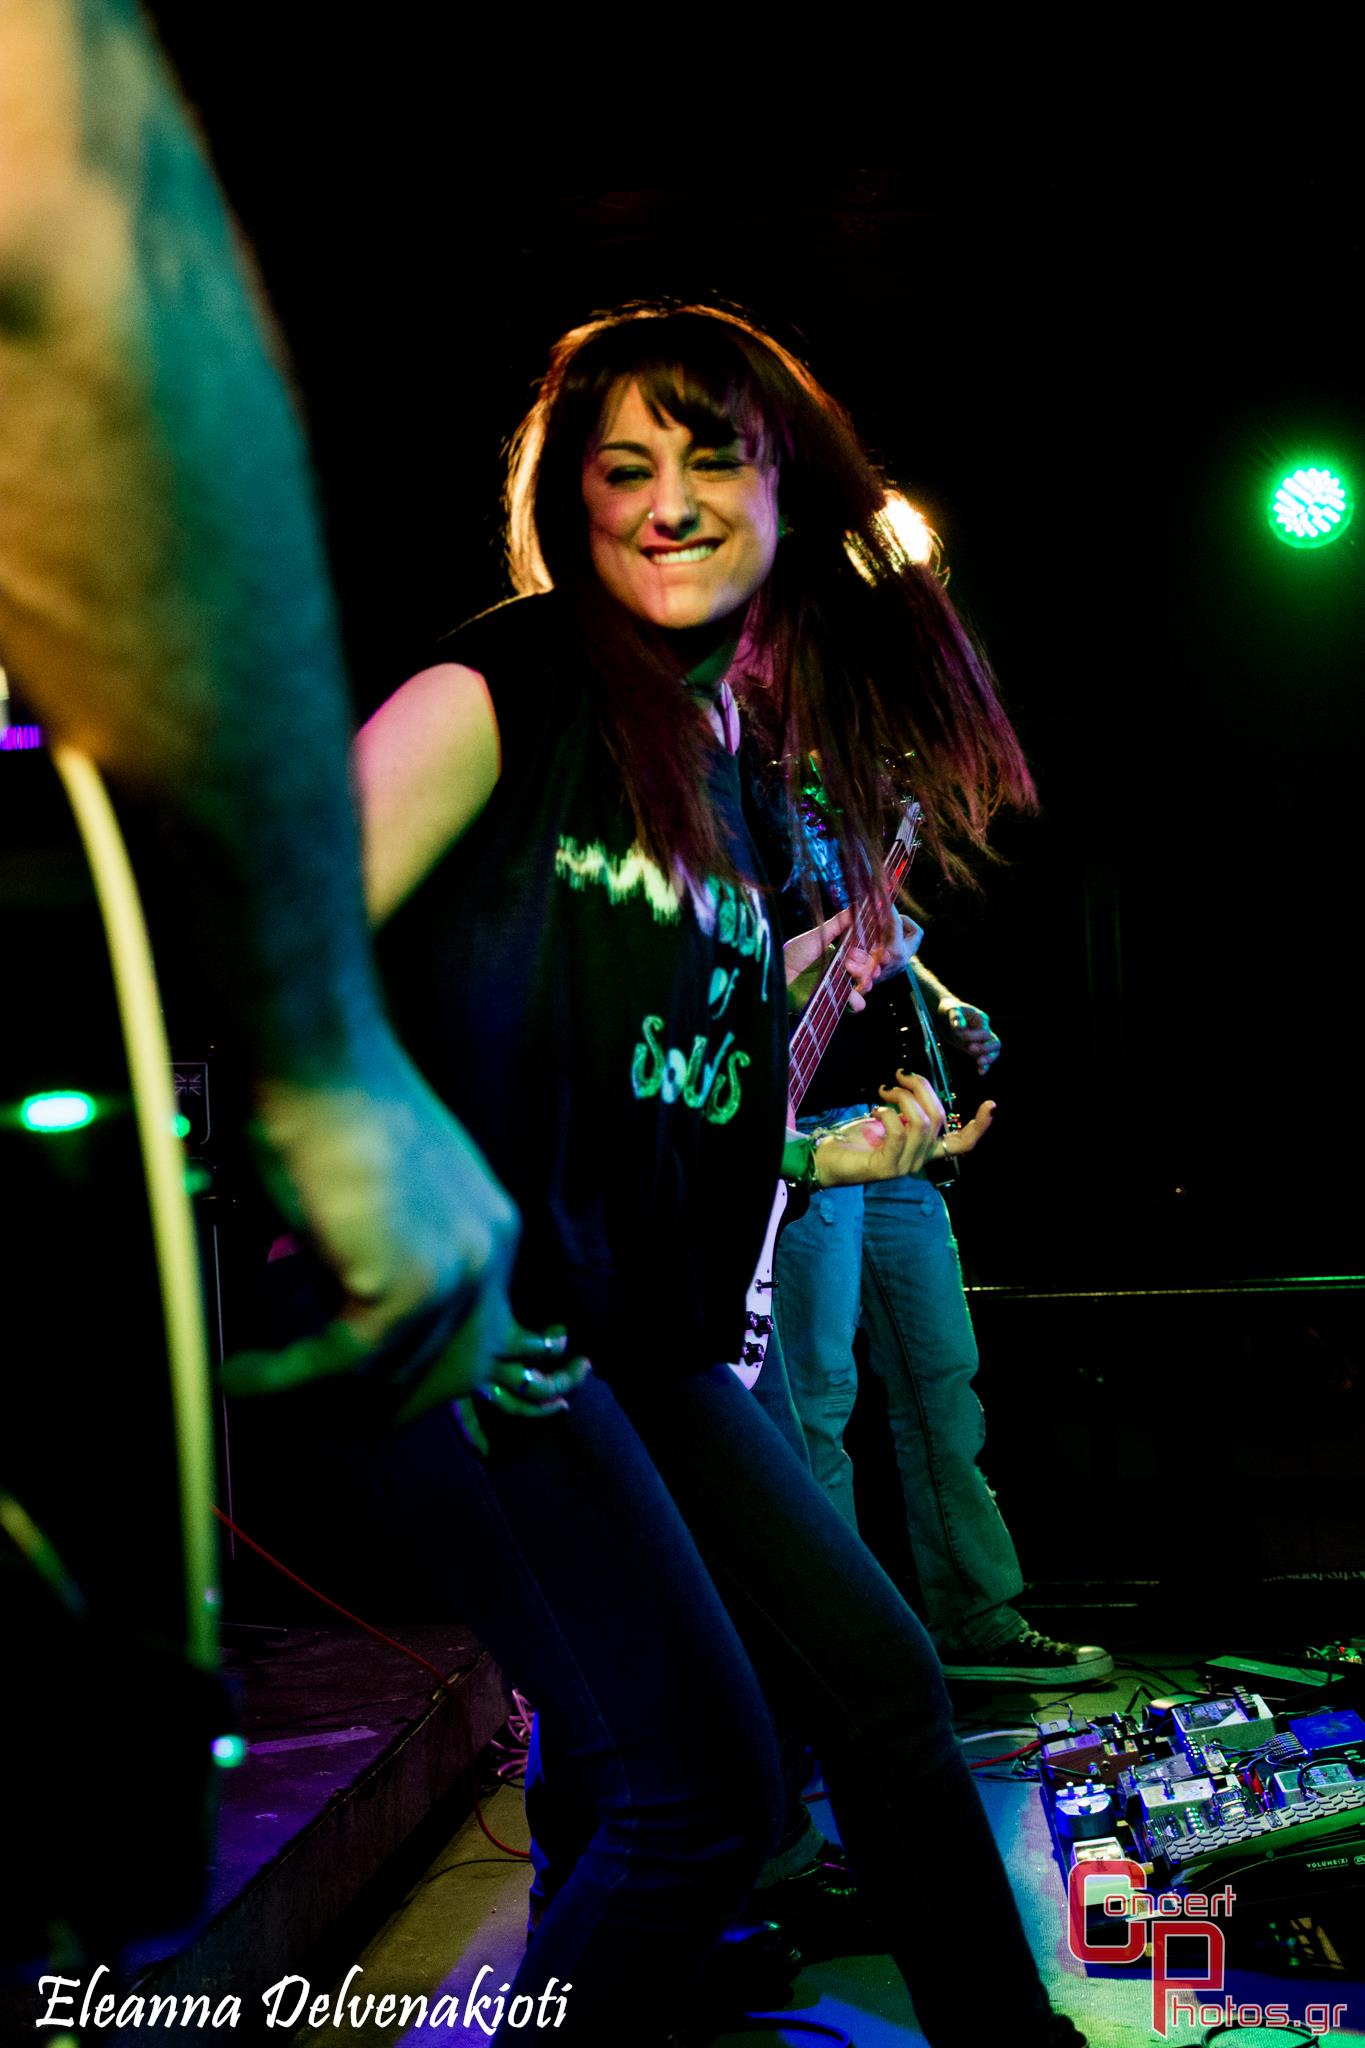 Battle Of The Bands Athens - Leg 4-test photographer:  - Battle Of The Bands-20150208-215153